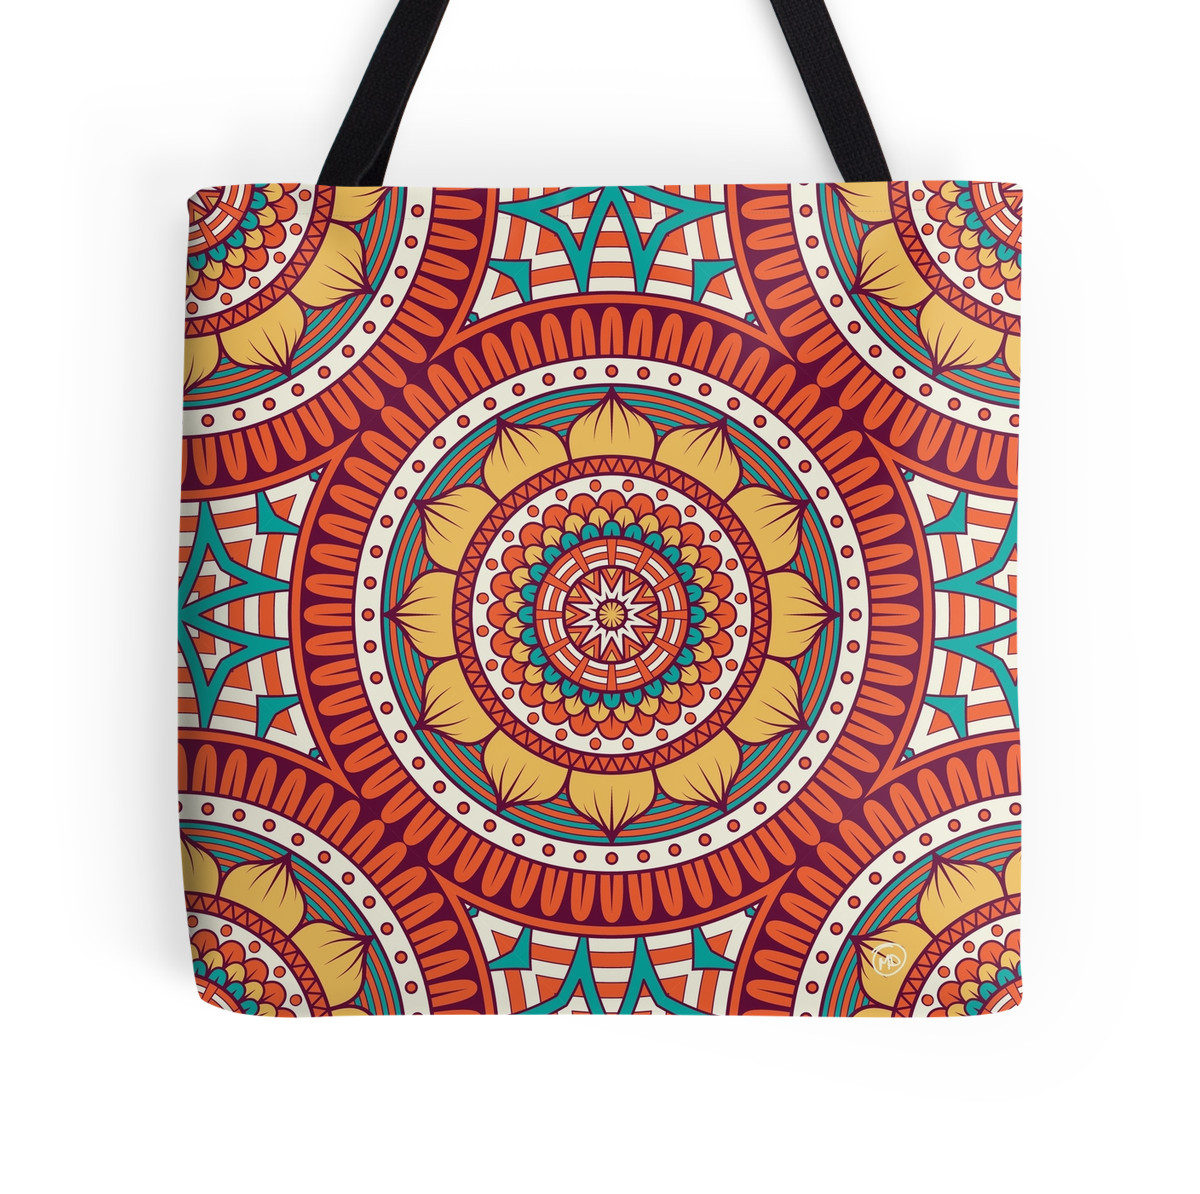 New Products: Prints, Totes, T-shirts and More!